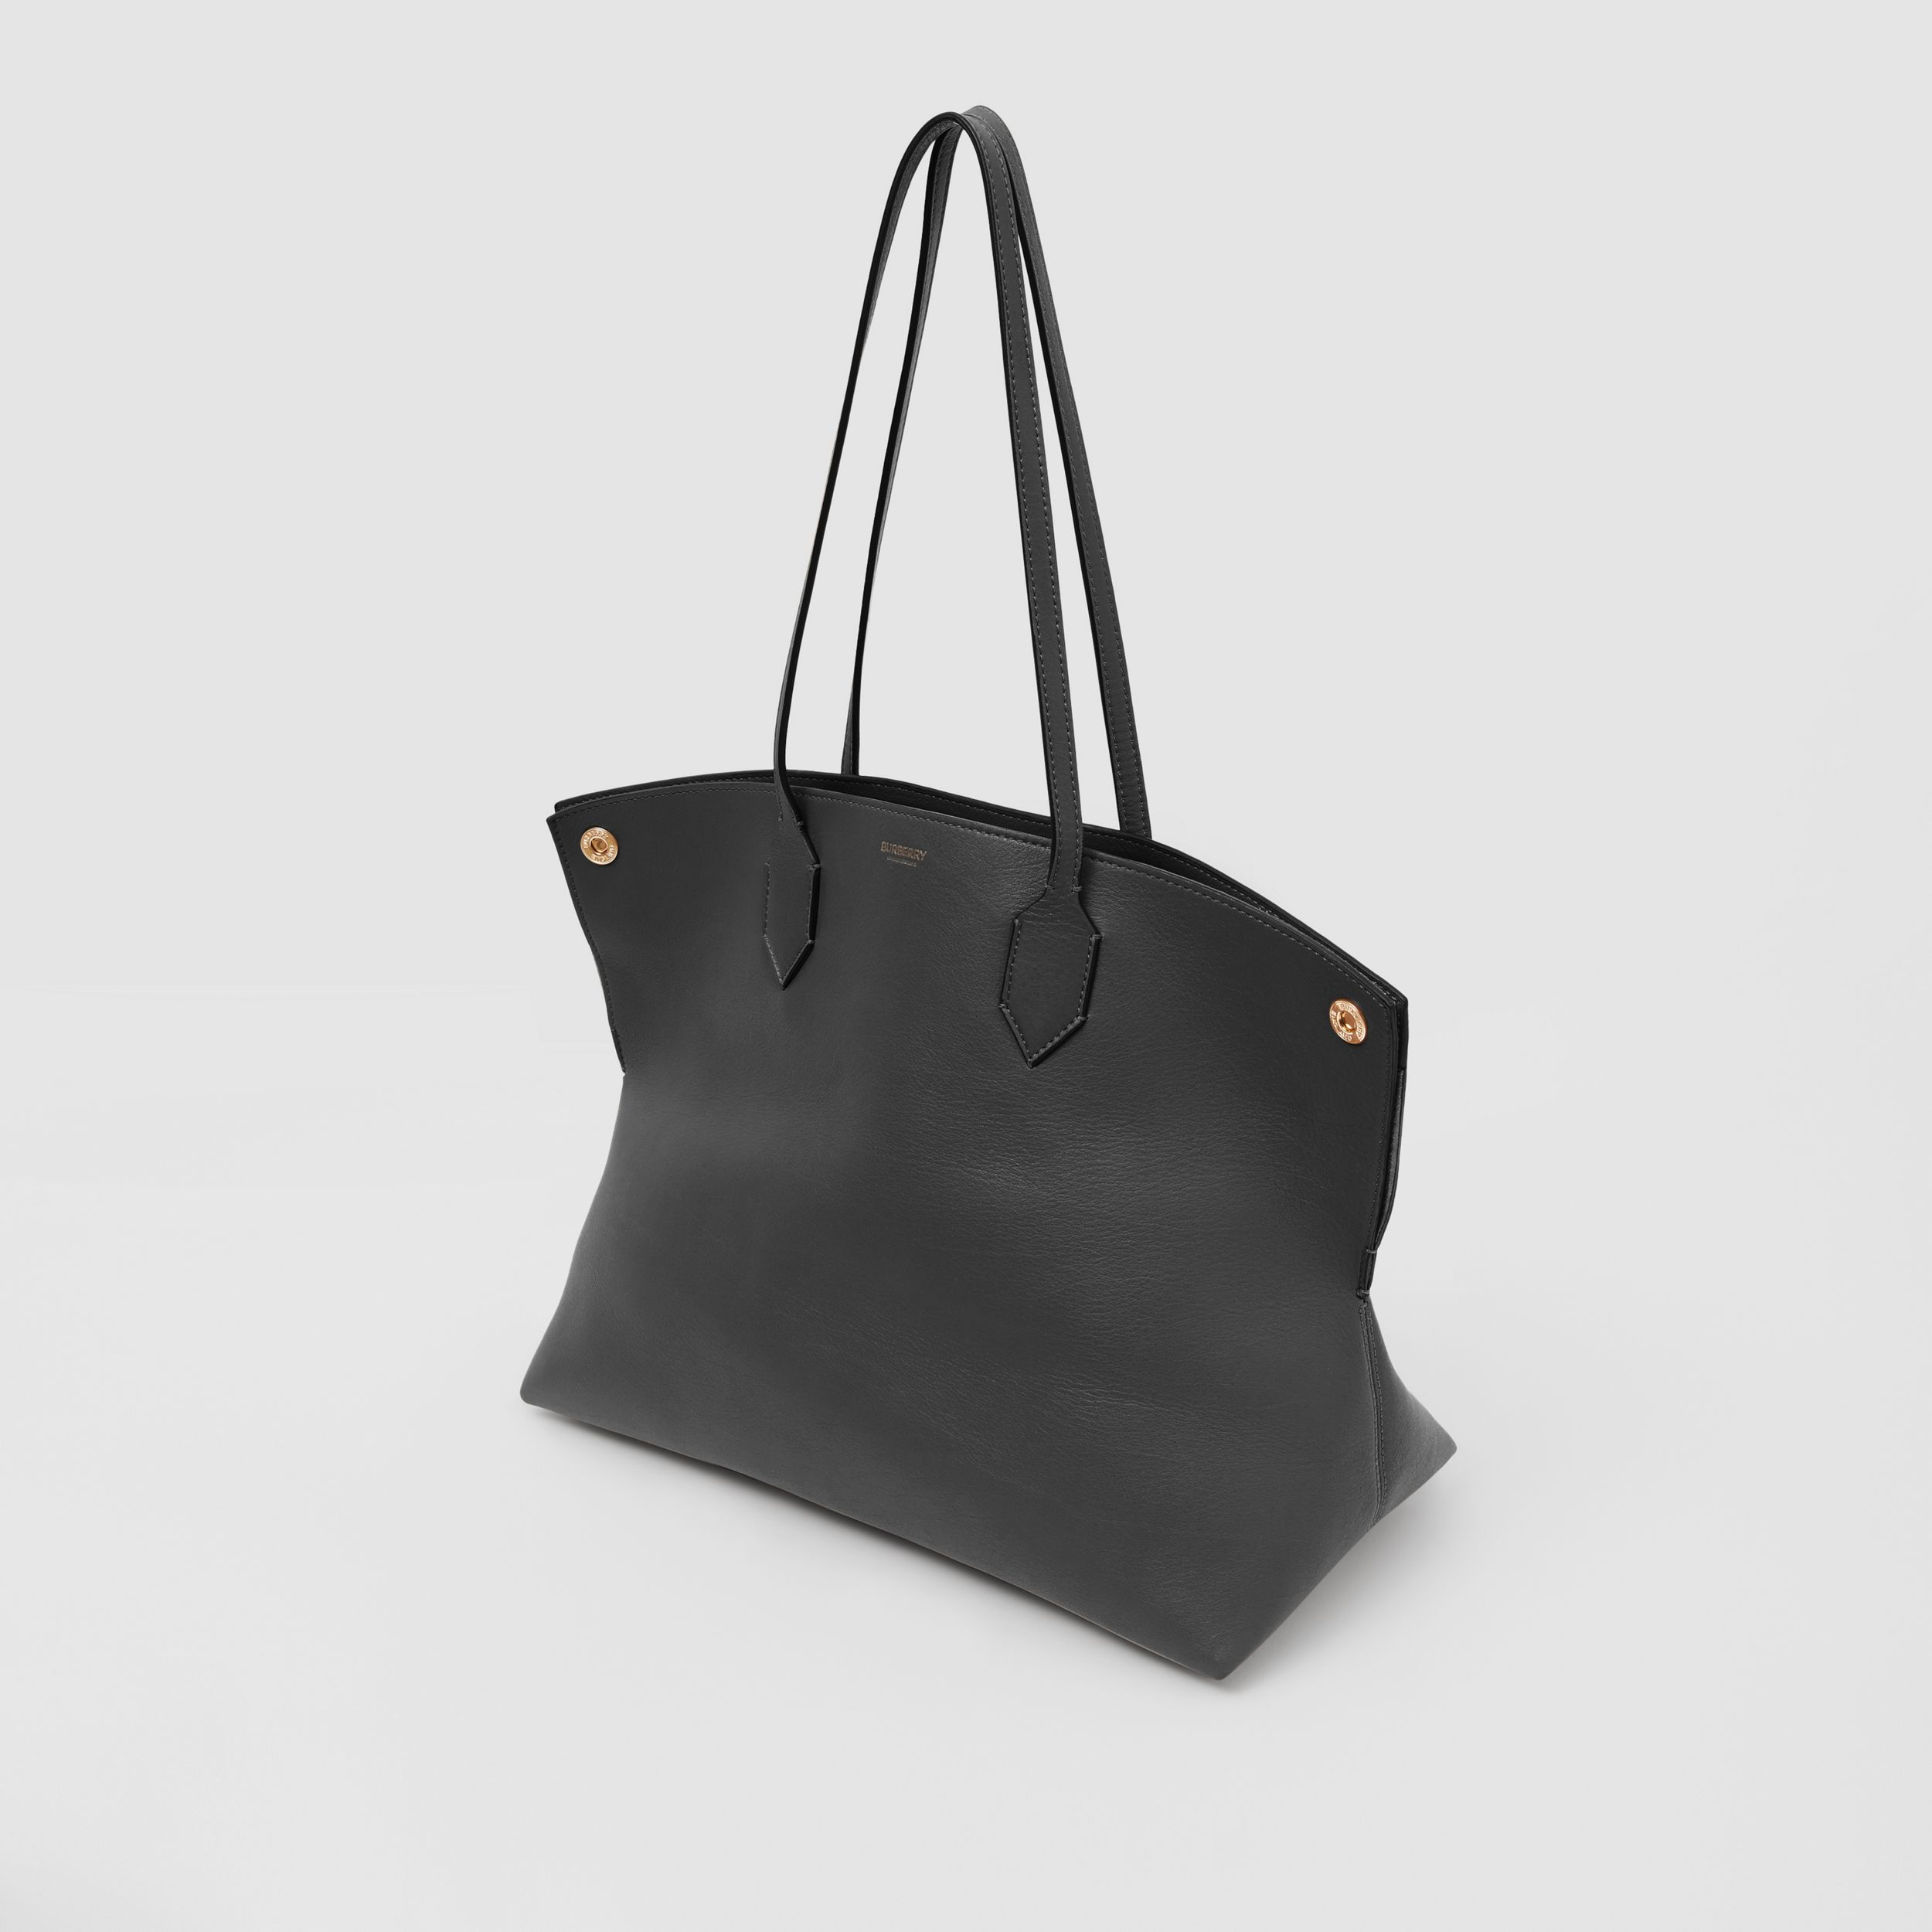 Medium Leather Society Tote in Black - Women | Burberry Canada - 4